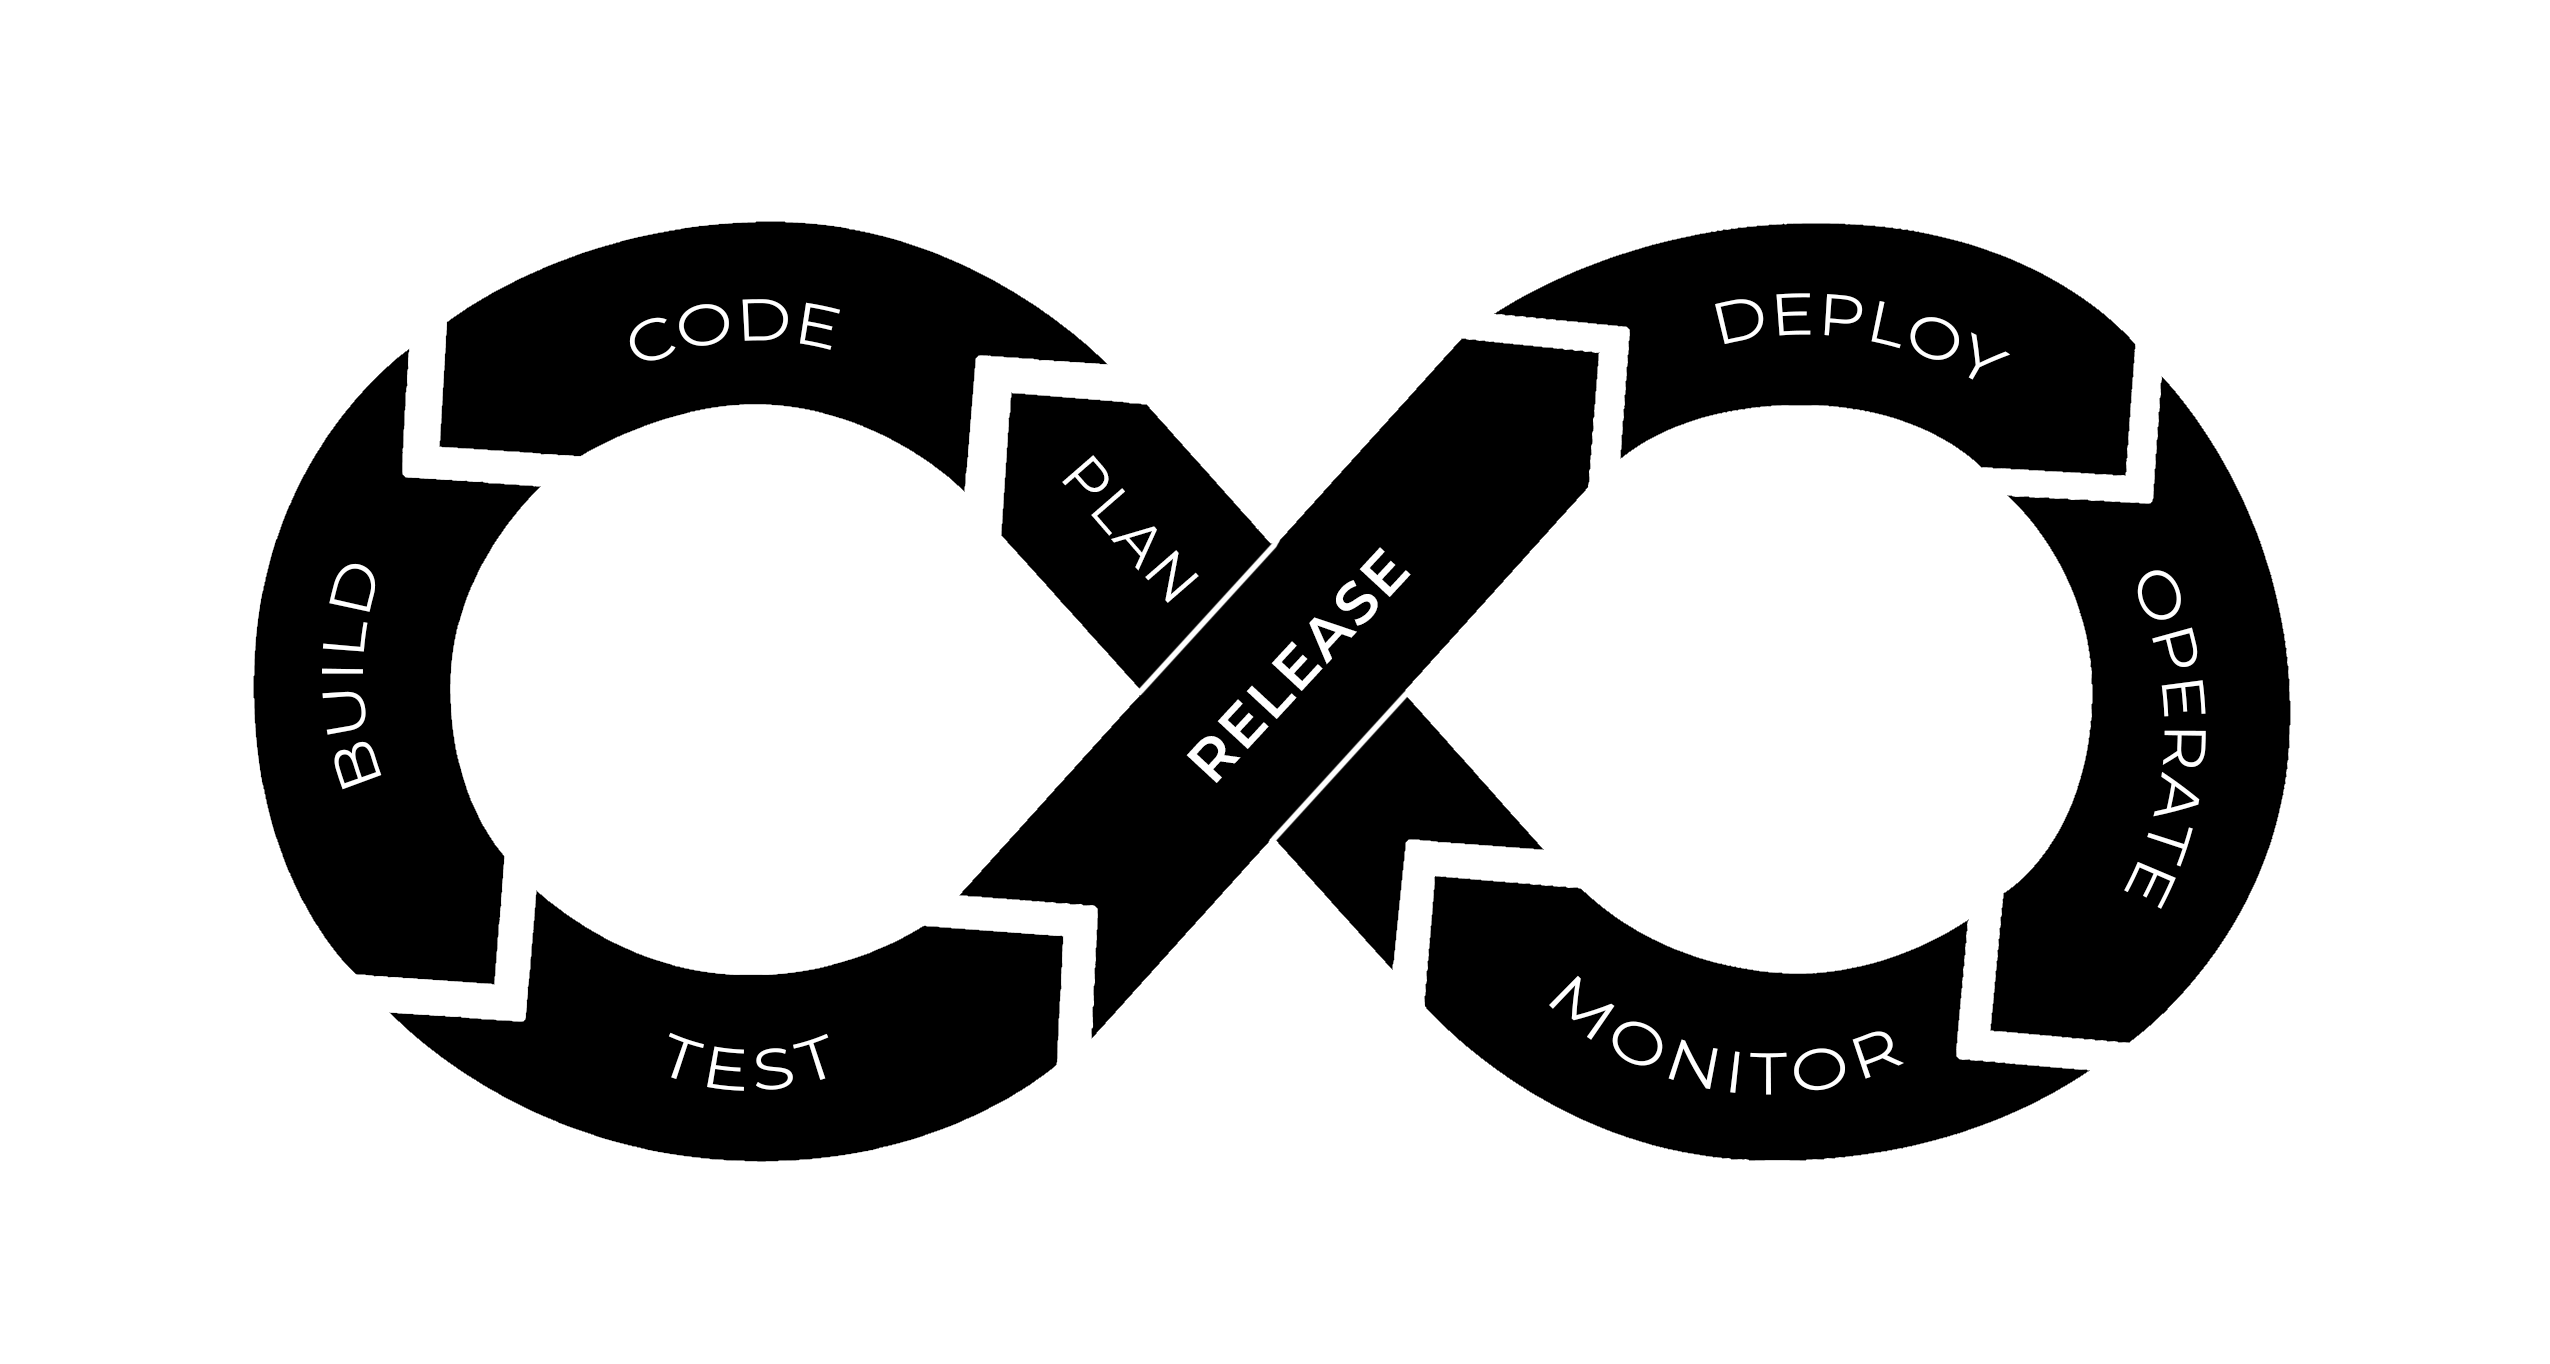 The DevOps Cycle